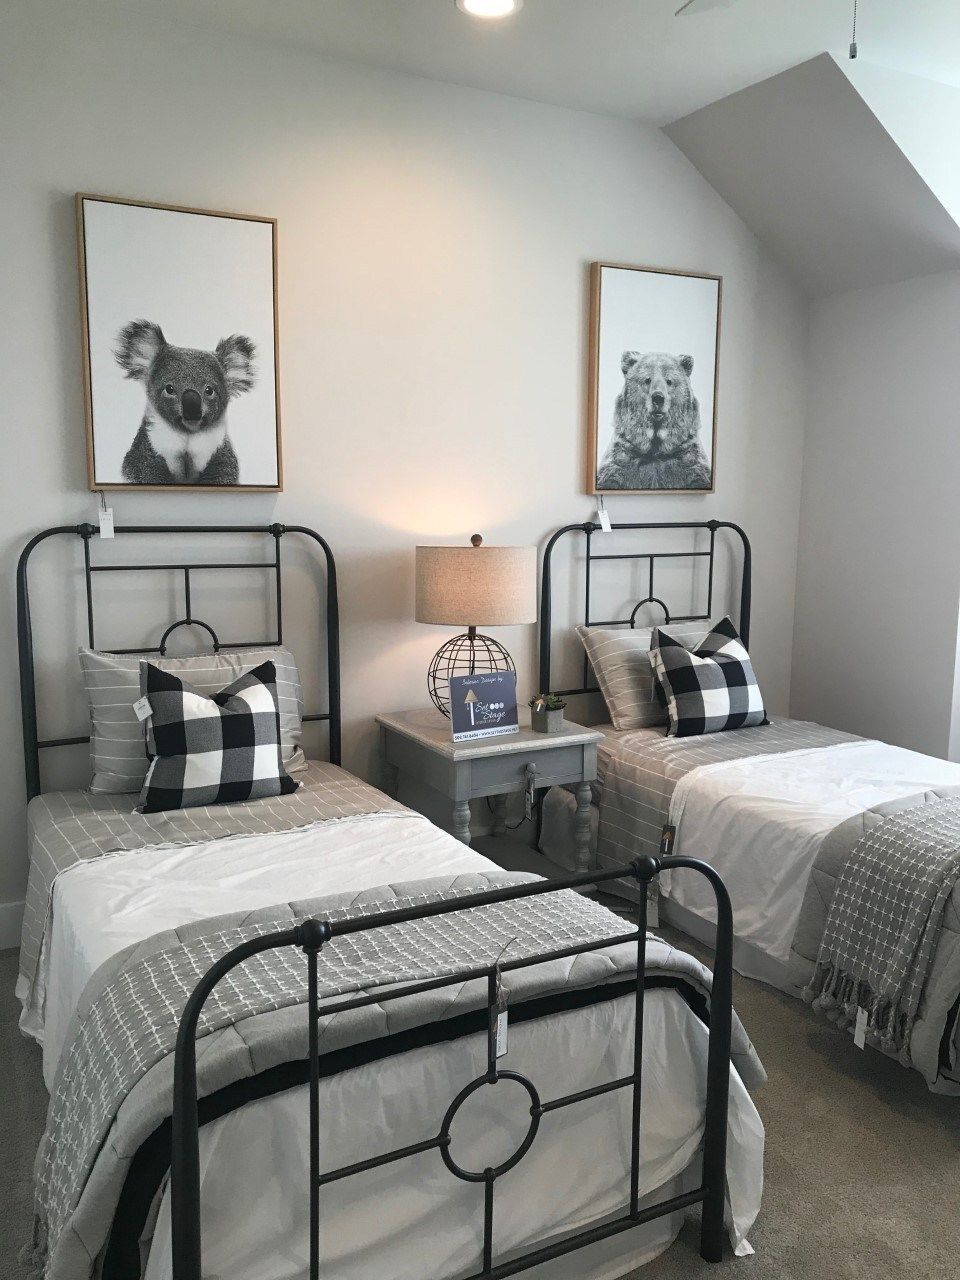 41 Classy Bedrooms Twin Beds Ideas For Small Rooms   Ever ...